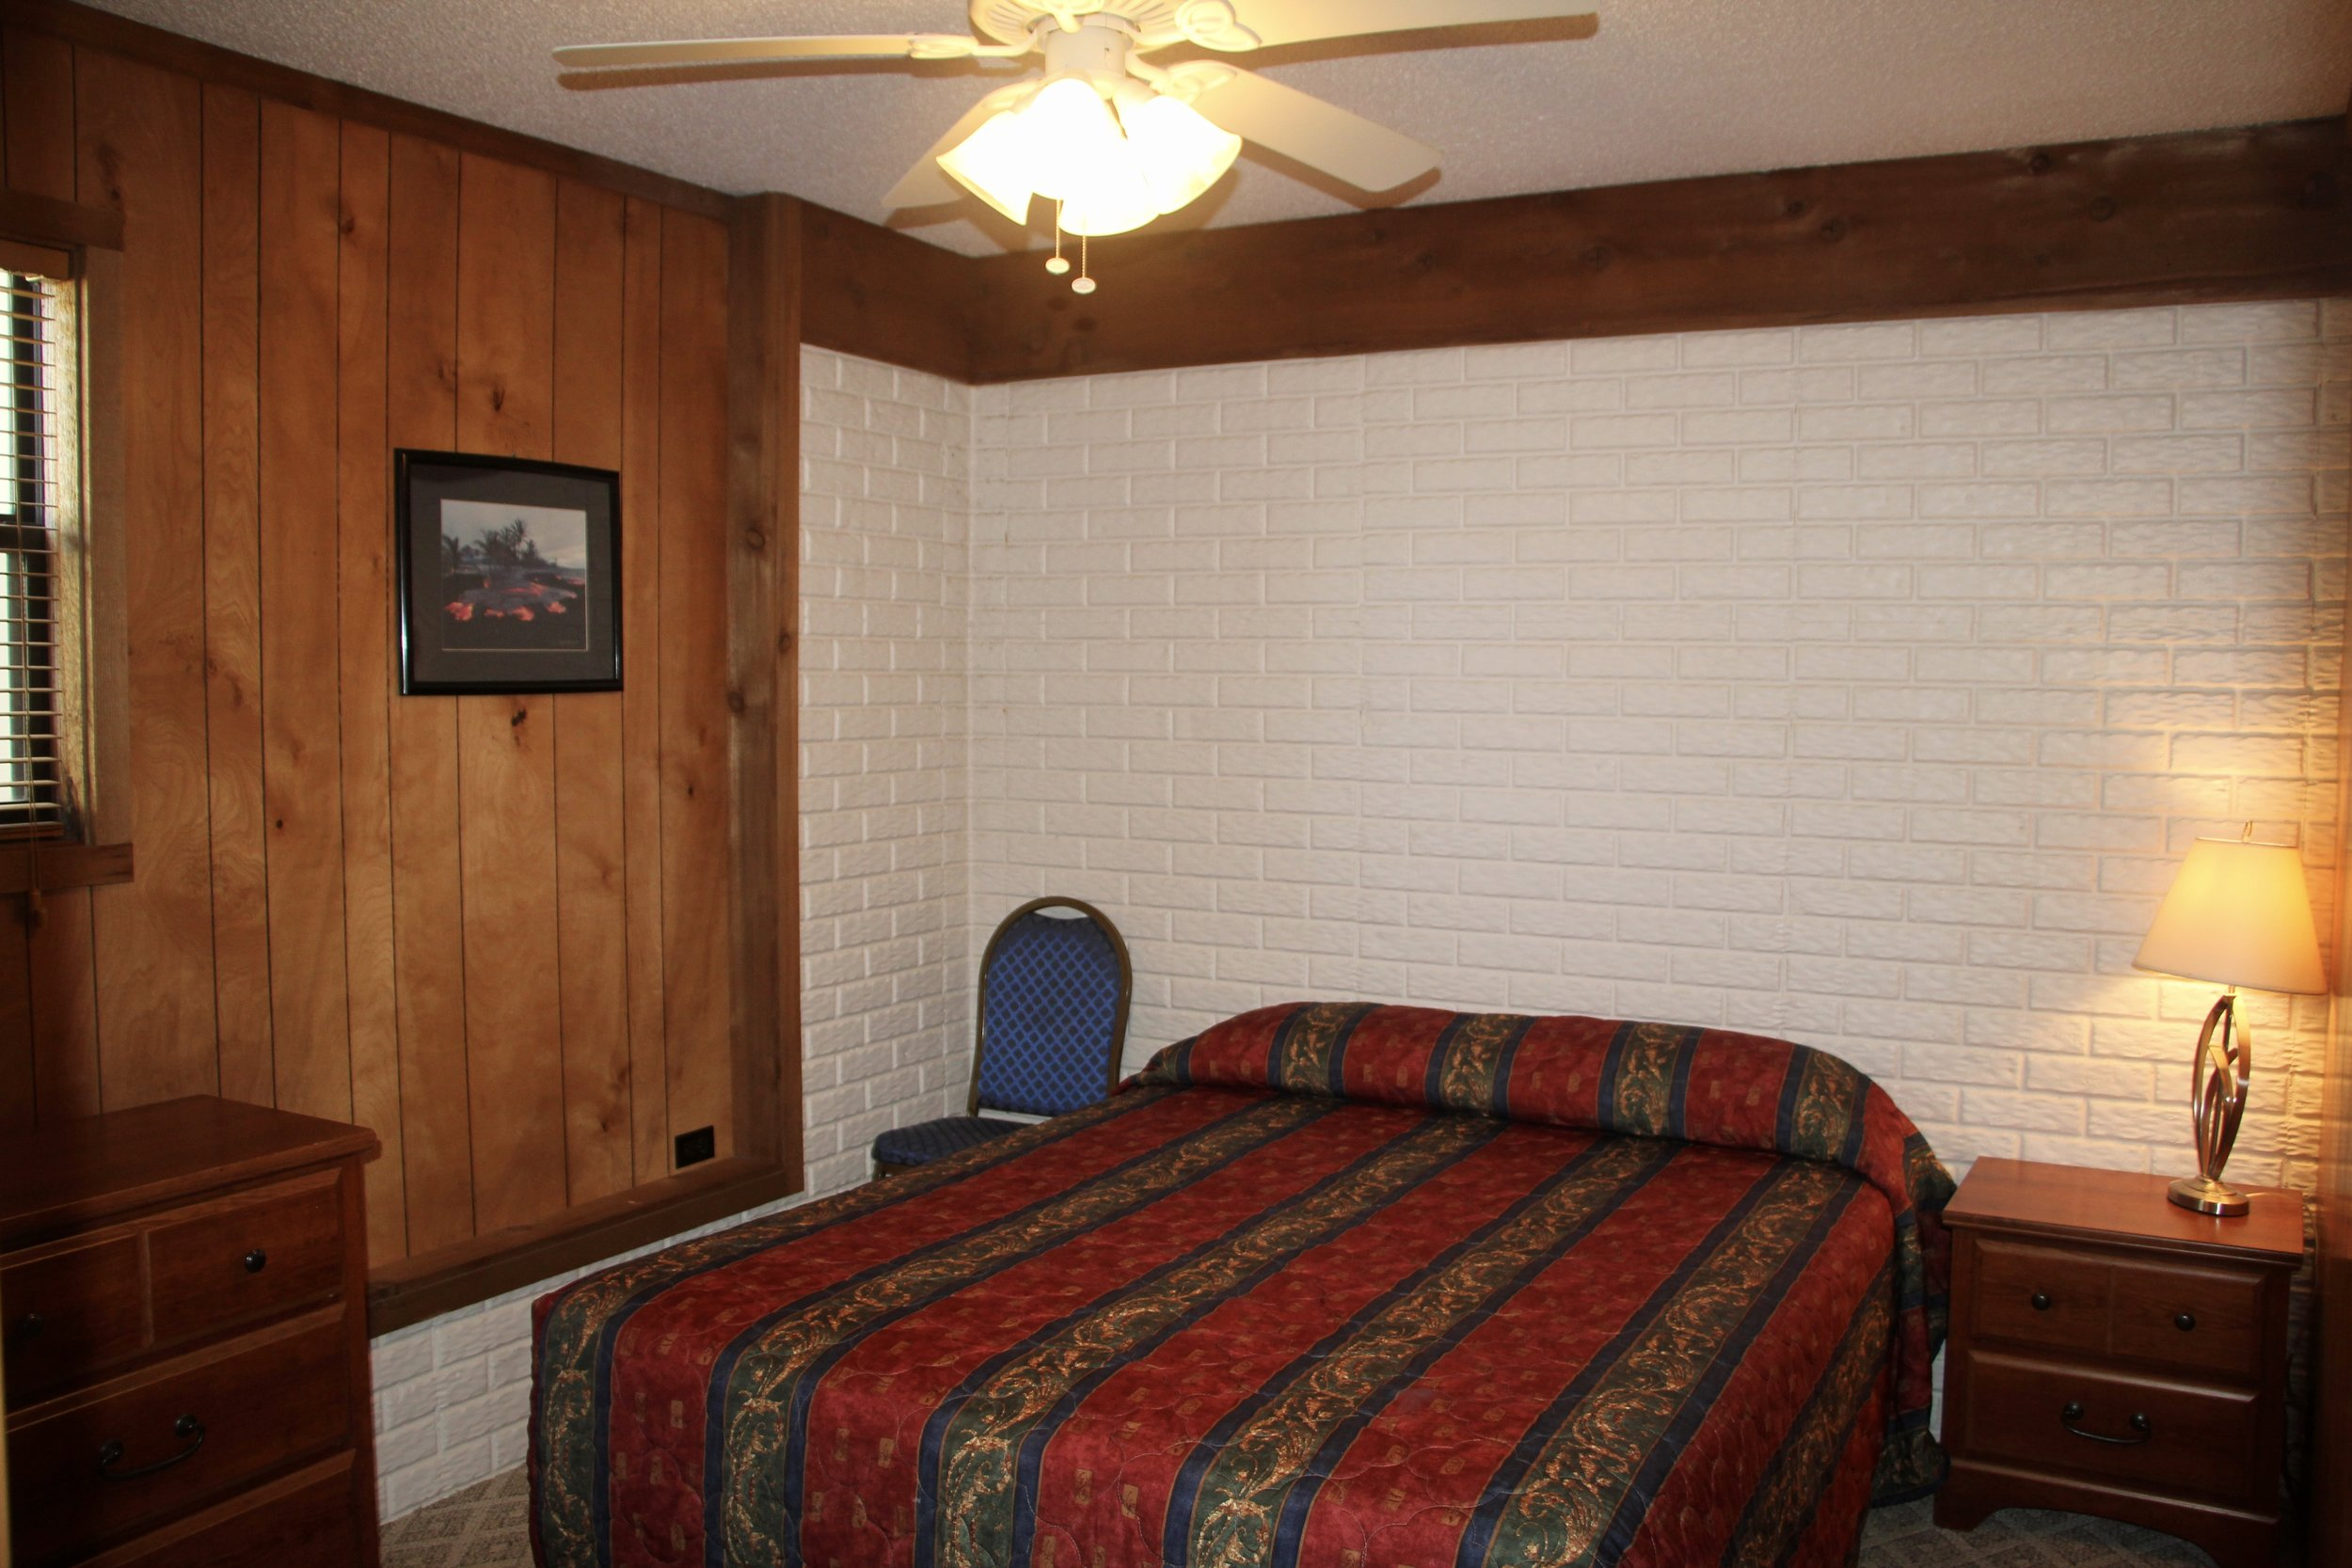 breezy point resort #8br3.jpeg